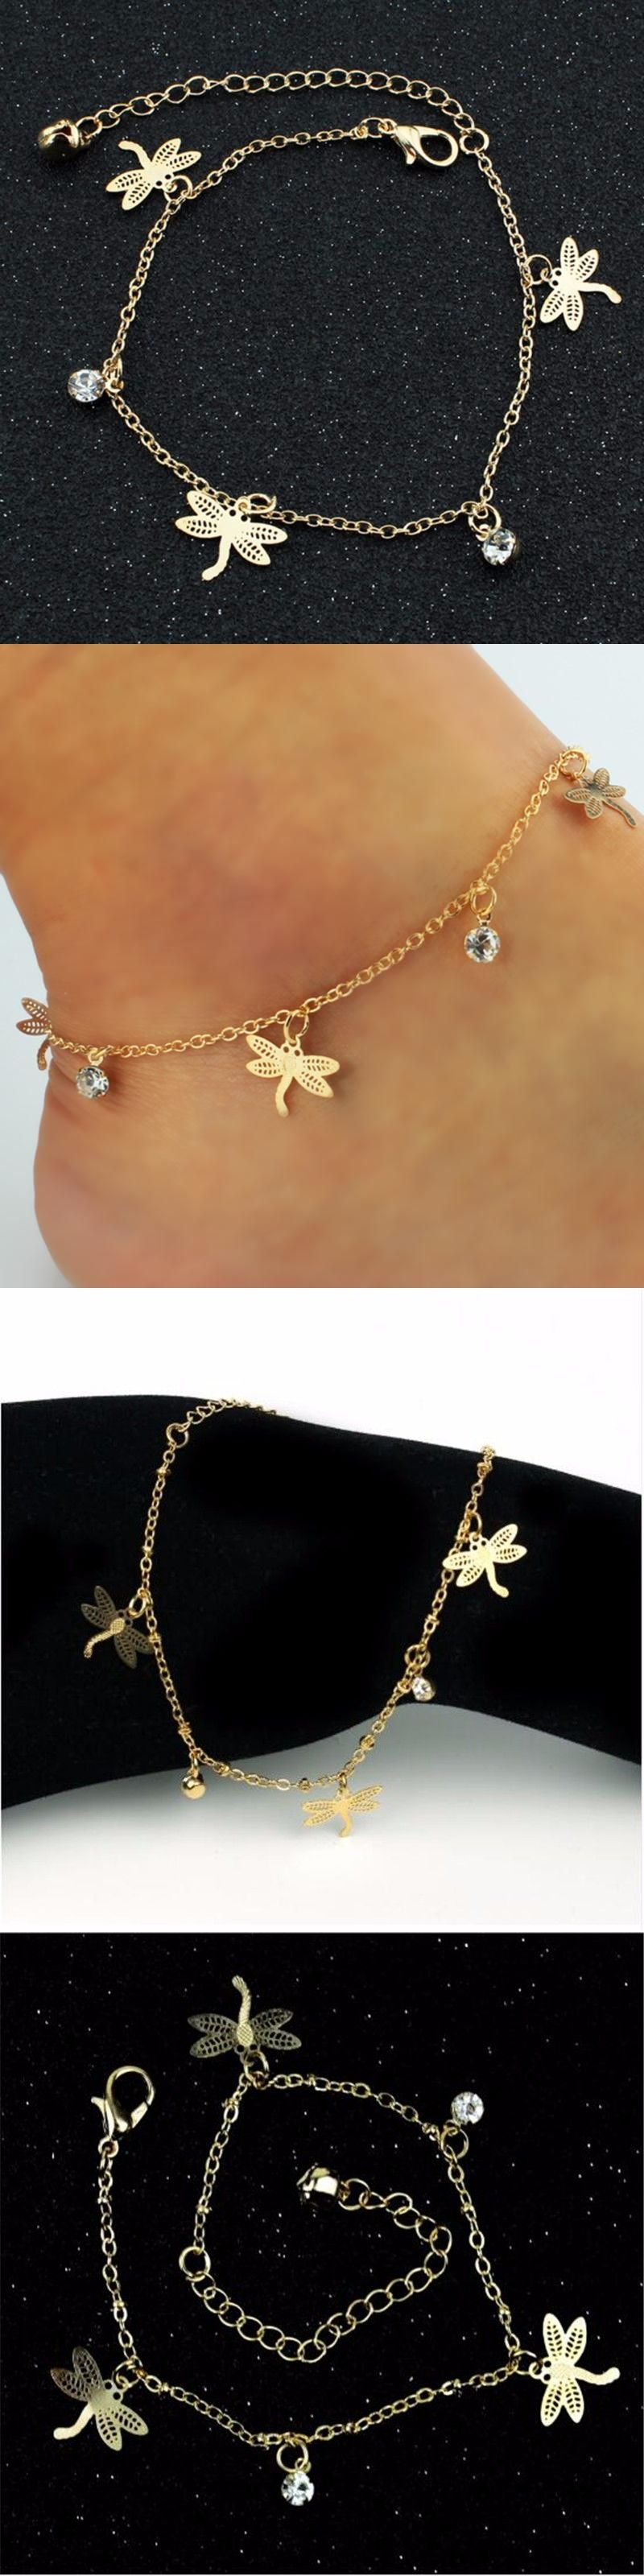 sweetheart lisa ankle anklet love image bracelets products